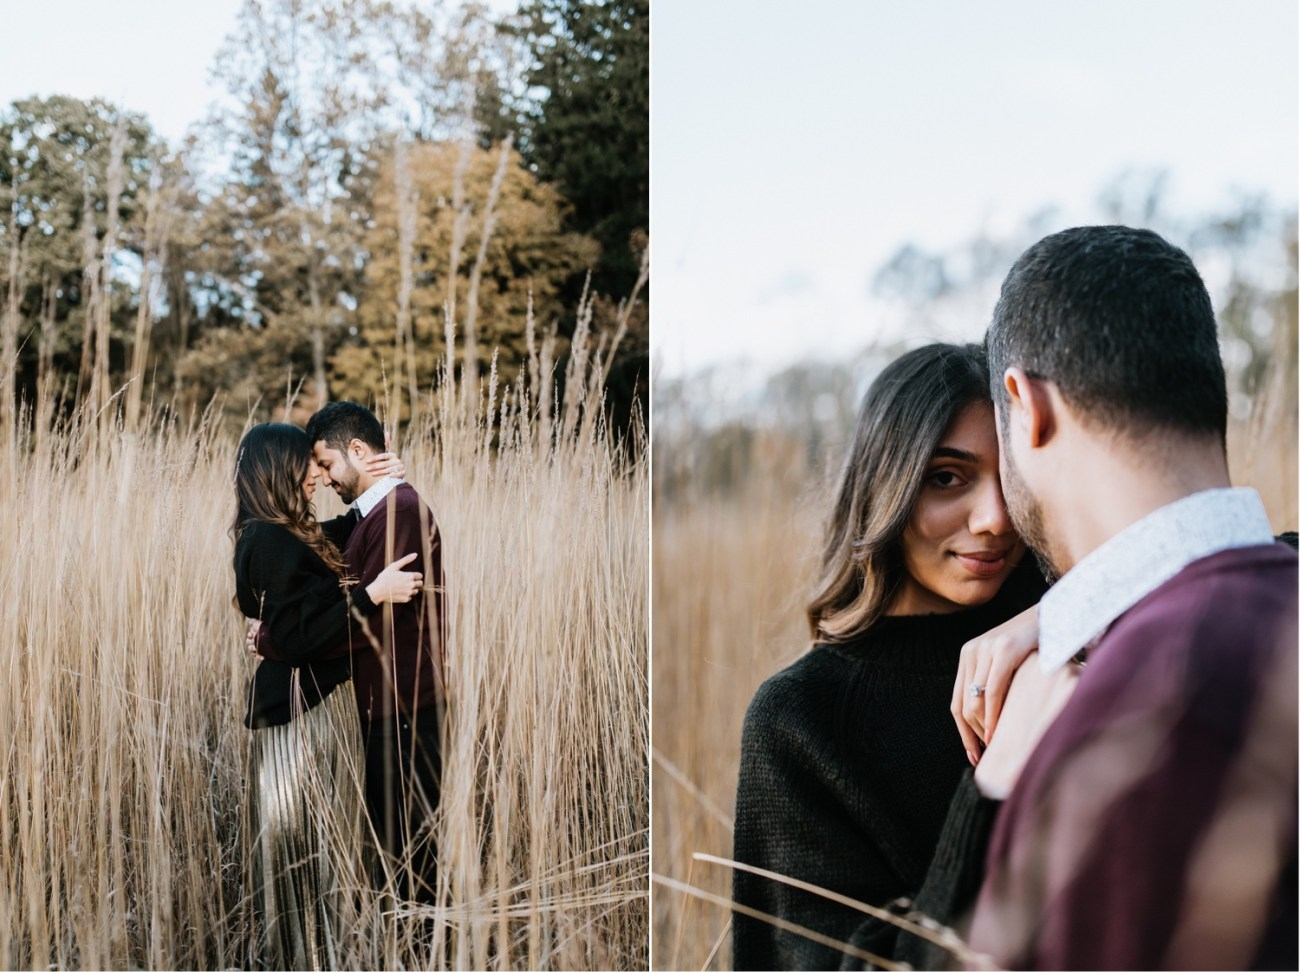 Cross Estate Gardens Engagement photos, New Jersey Wedding Photographer, Fall Engagement photos in New Jersey Anais Possamai Photography